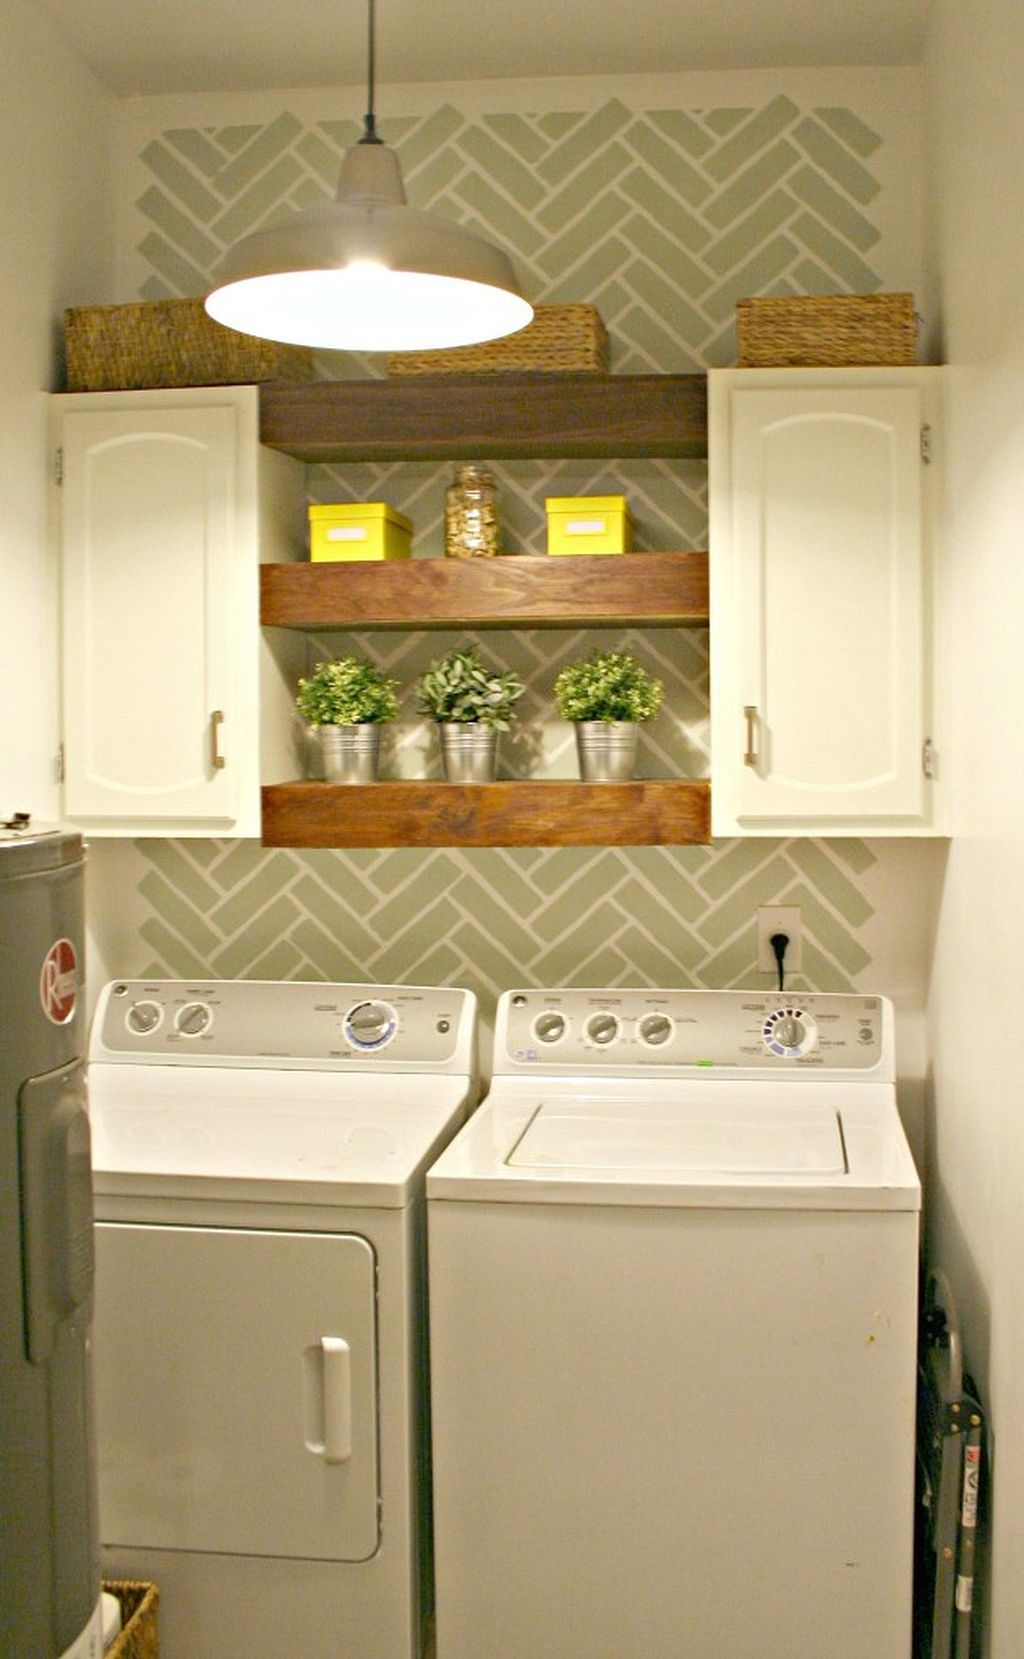 remodel pictures laundry room shelving hgtv options ideas tips interior shelf